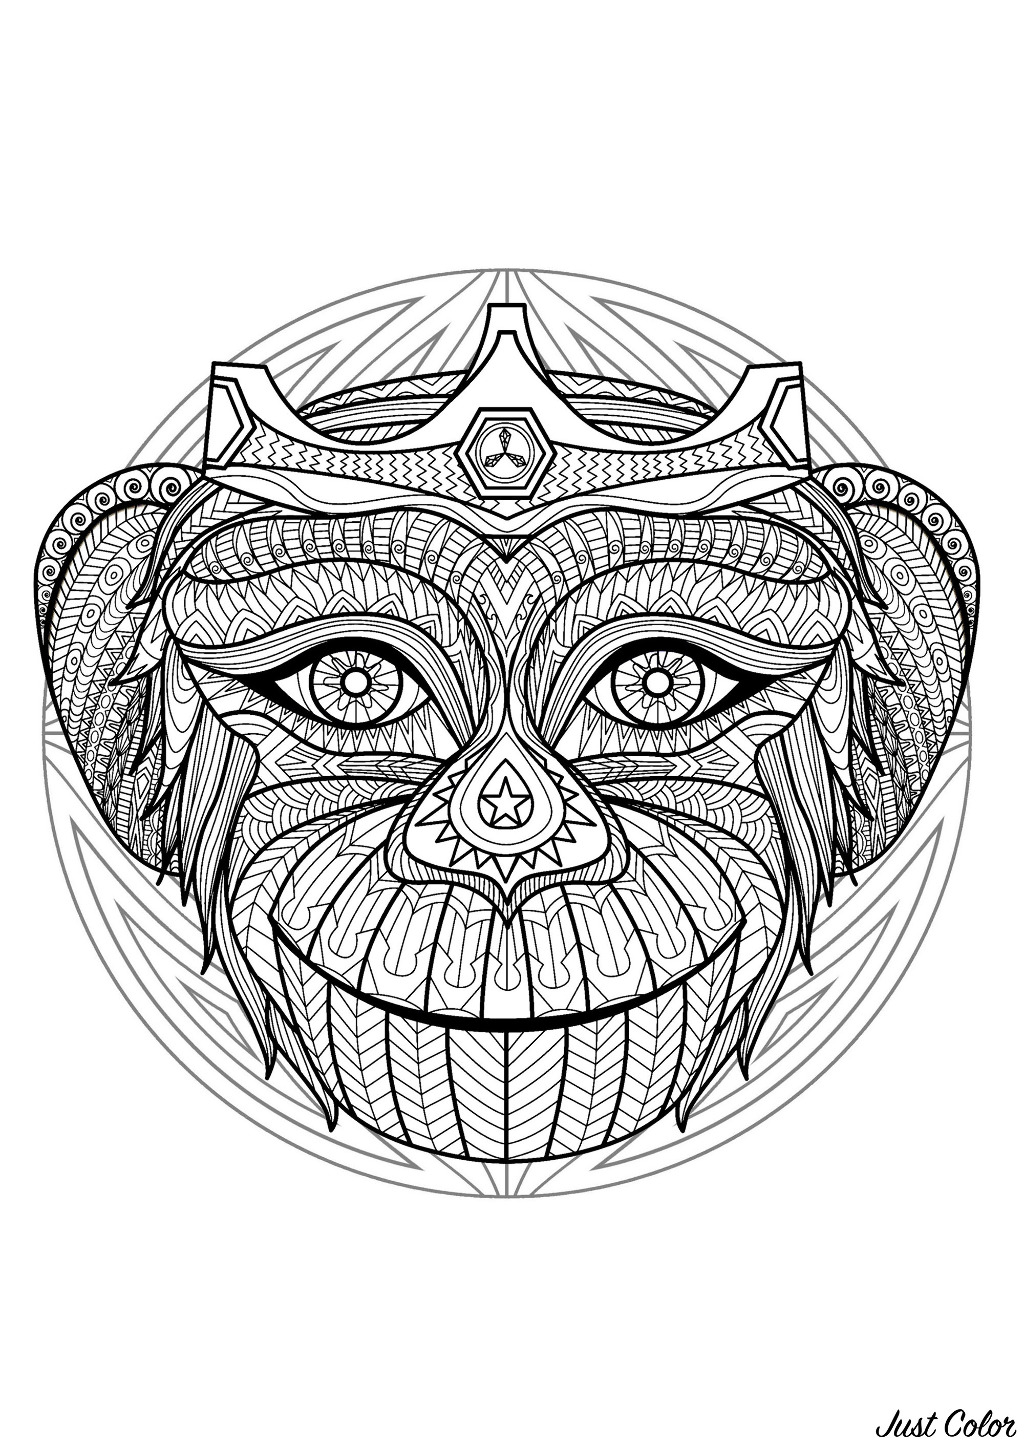 Mandala with beautiful Monkey head